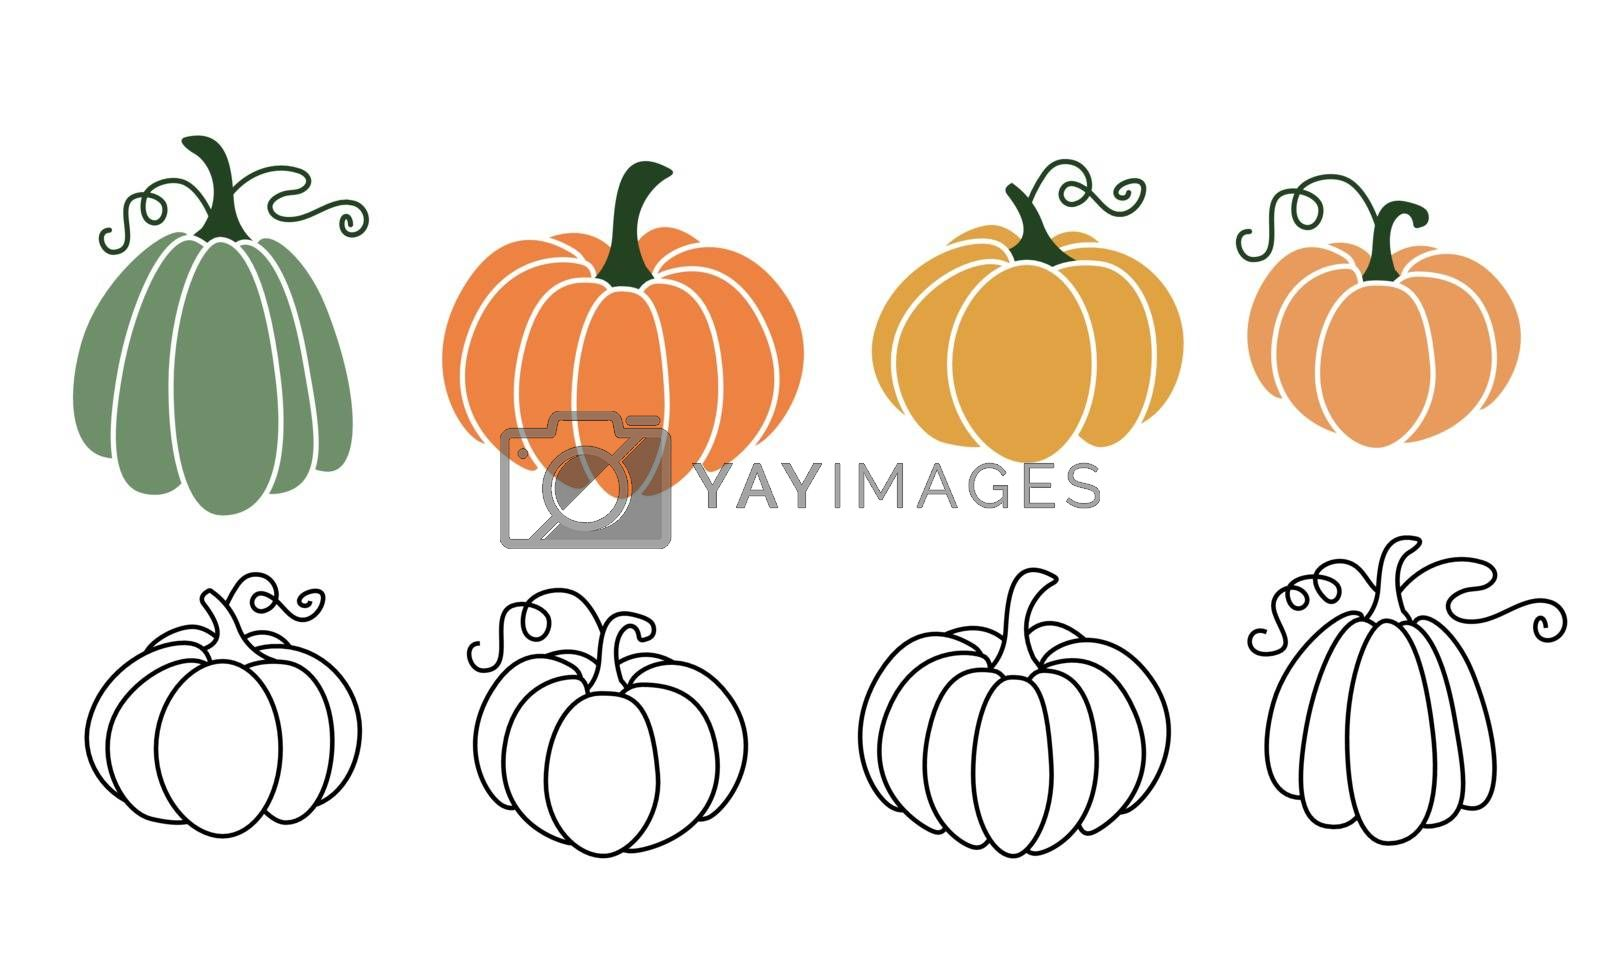 A set of pumpkins in various shapes, black outlined and colored. Vector collection of cute hand drawn pumpkins on white background. Elements for autumn decorative design, halloween invitation, harvest theme and thanksgiving